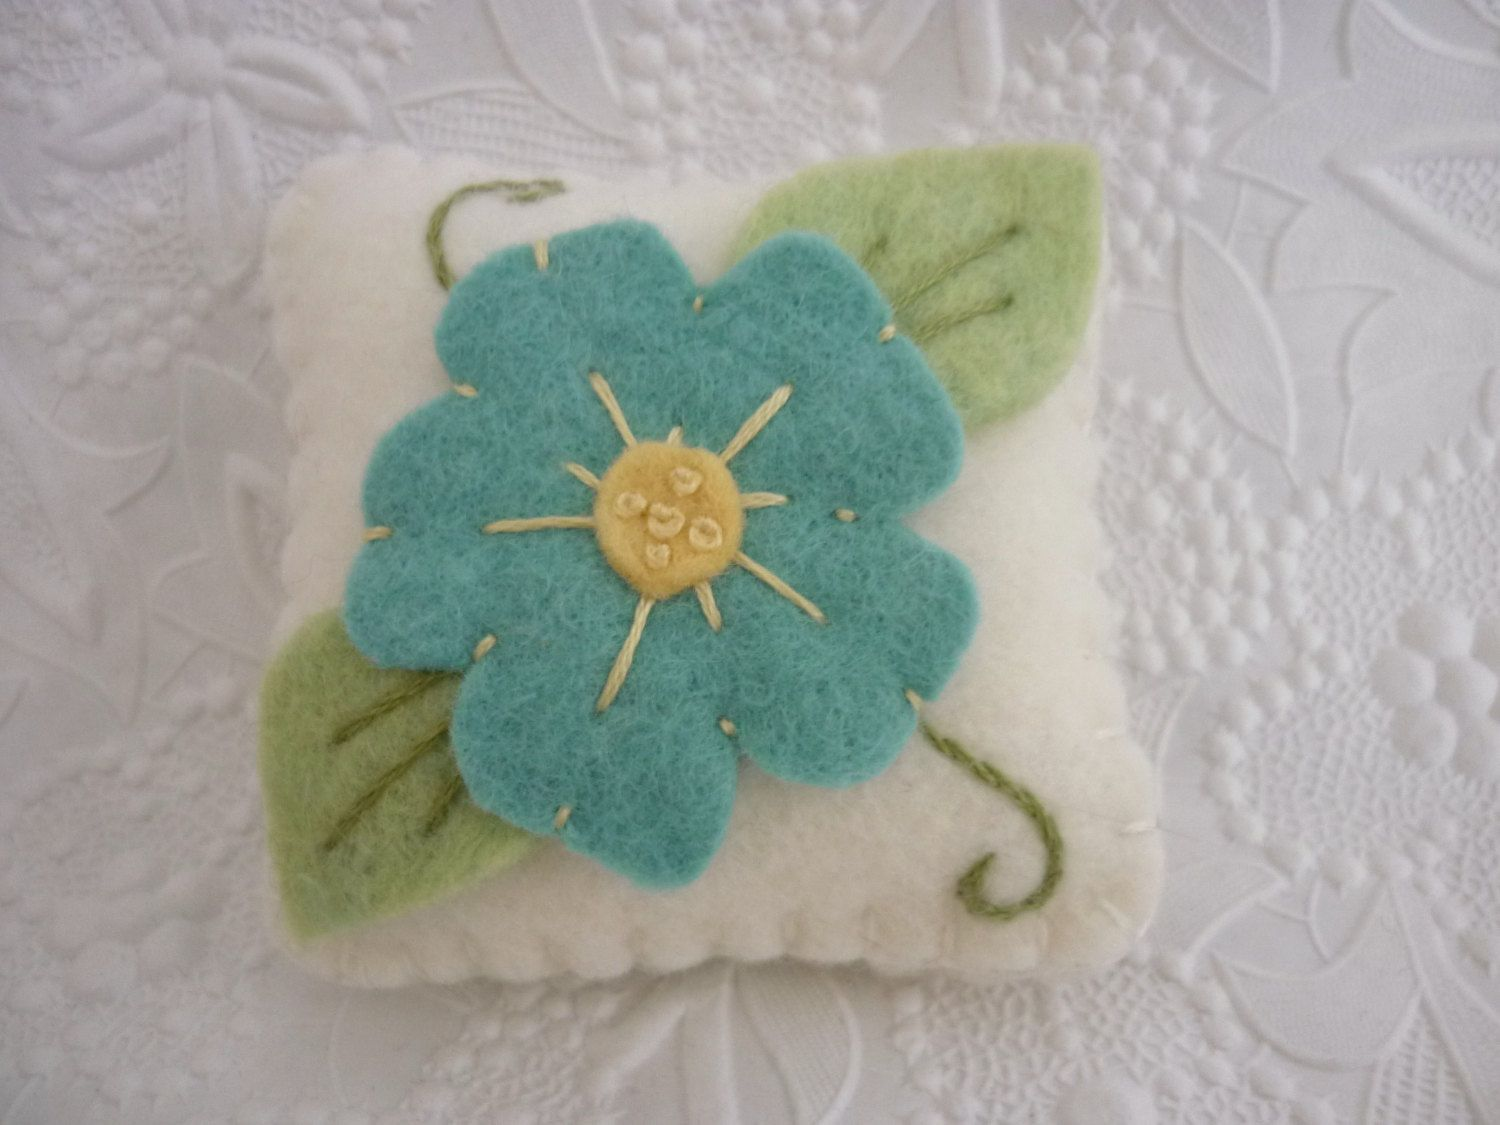 Primitive Flower Pincushion Felt Wool Penny Rug Style Applique  This little pincushion is made from top quality felted wool. The flower is beautiful deep aqua blue color, with a pastel yellow center with tiny French knots in the middle. Mint green wool felt was used for the leaves with hand stitched veins in the center.  All pieces are hand stitched to the pincushion.  Measures 2 1/2 wide, 2 1/2 tall and is firmly stuffed with poly fill.  Would make a great gift for any quilter.  If...